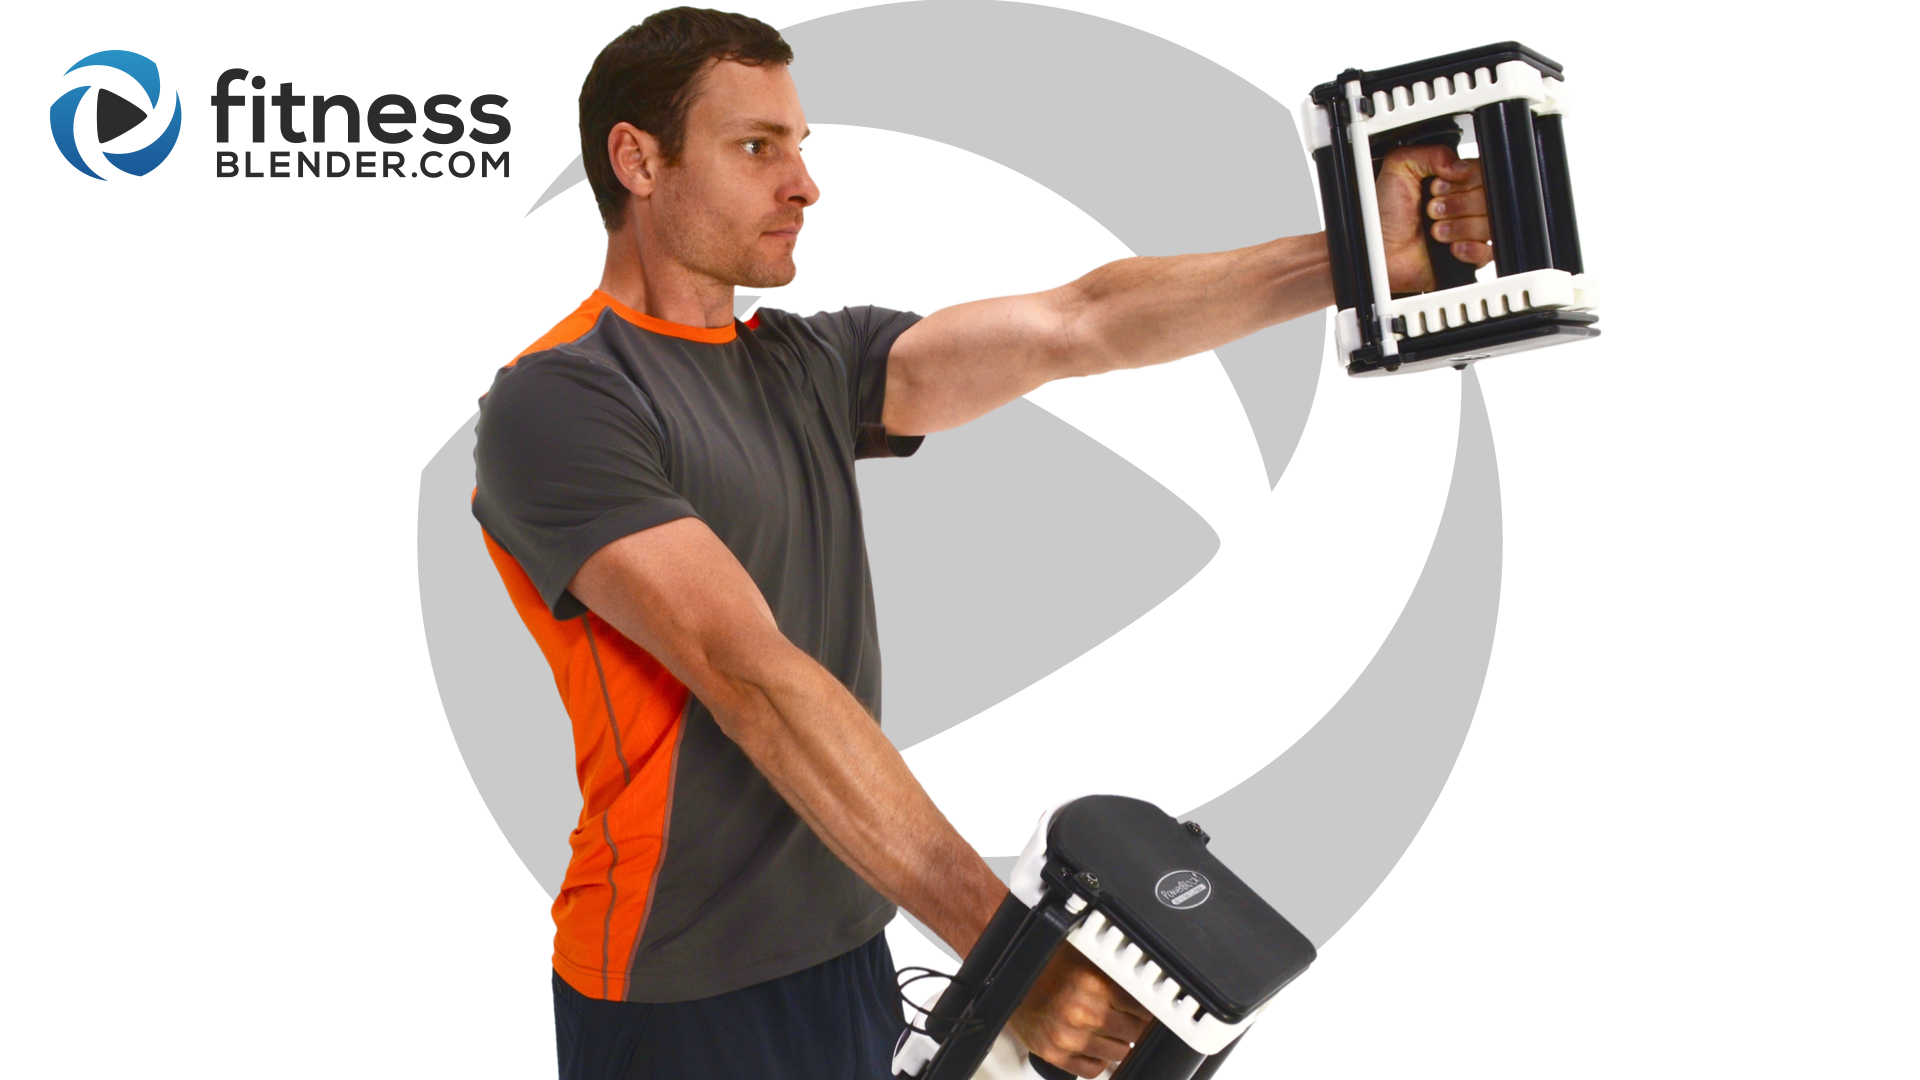 Upper Body Alternating Dumbbell Workout Challenge Strength And Coordination Fitness Blender